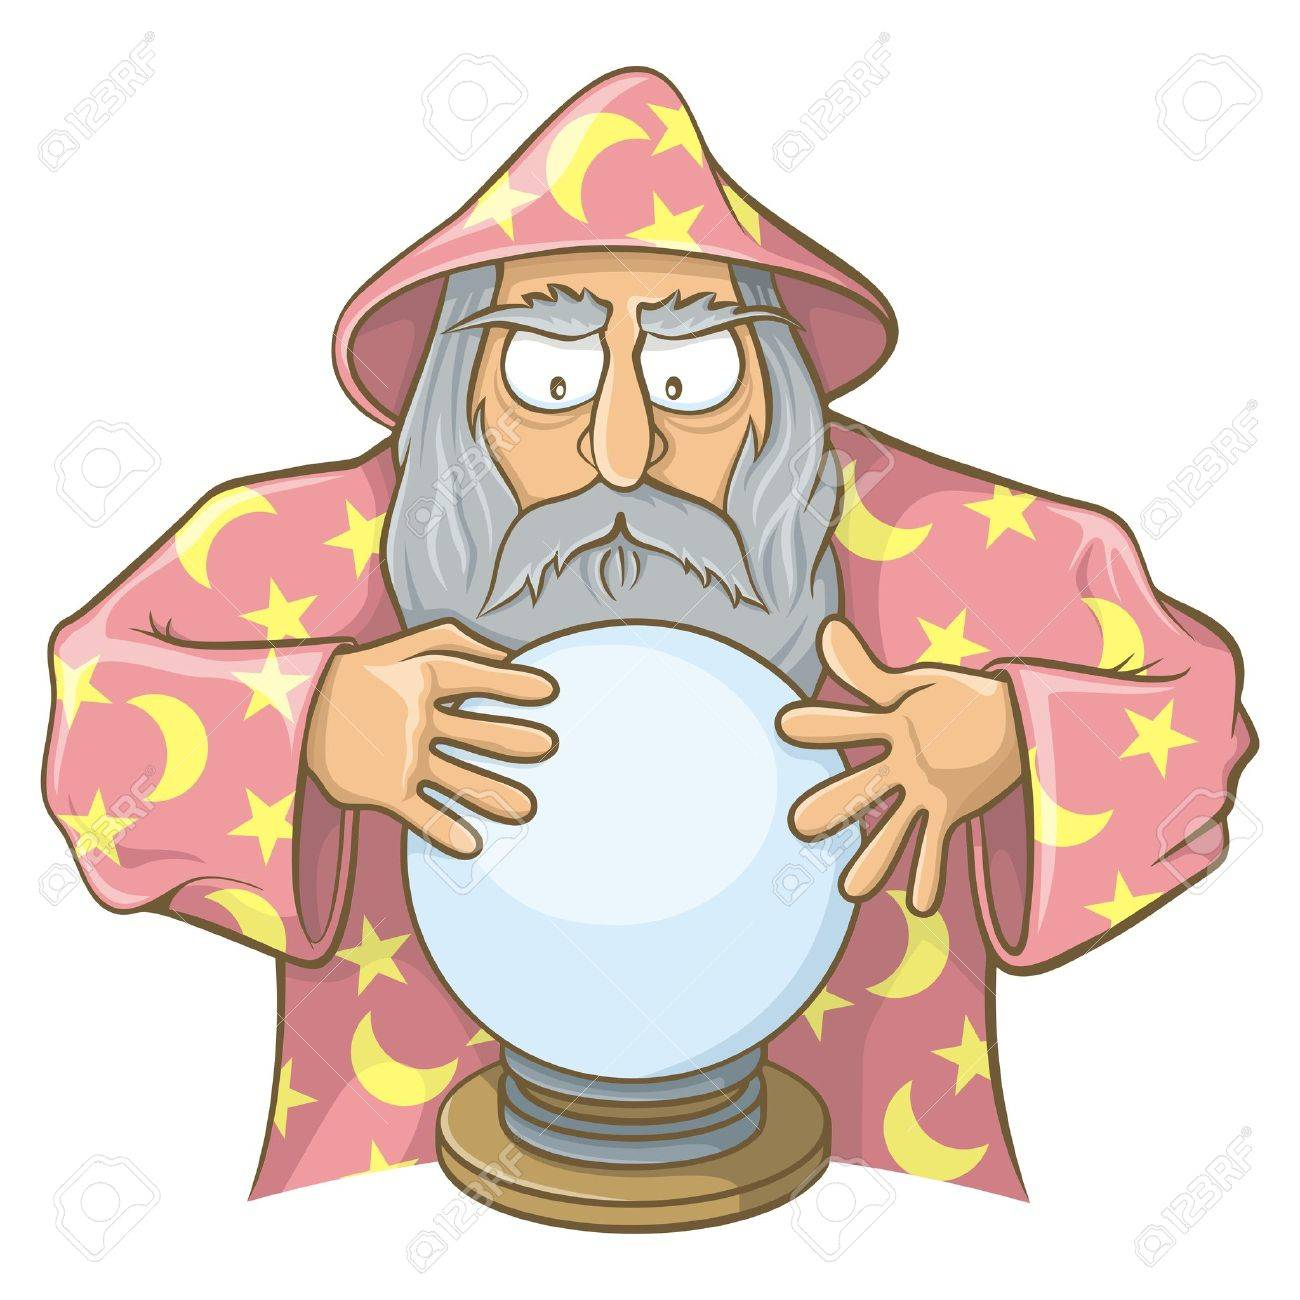 Old wizard cartoon in pink cape looking at magic ball. - 18594541